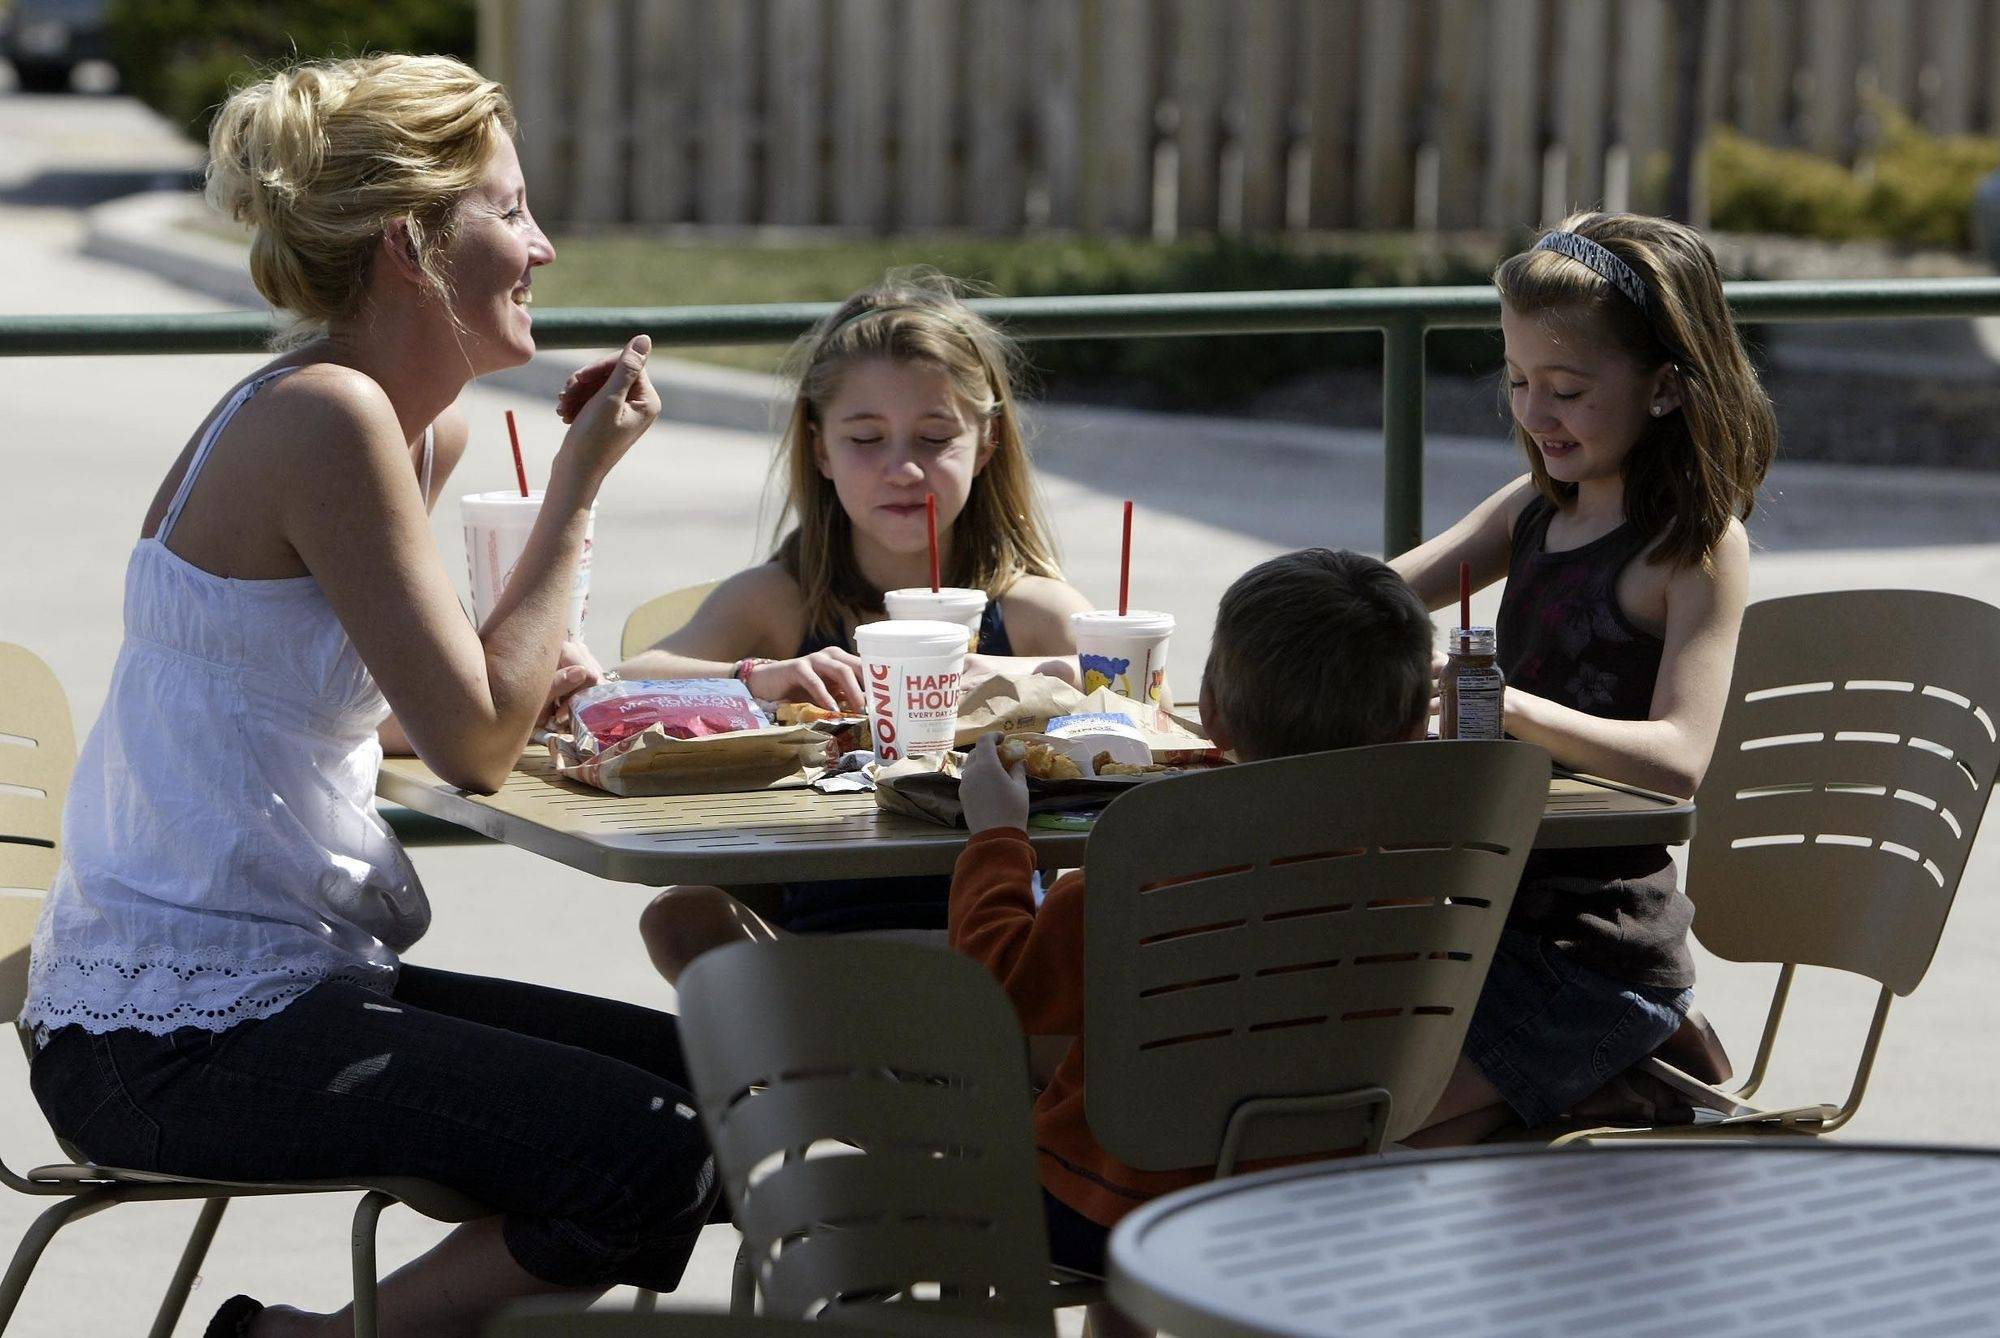 """It's a nice break, it's awesome"" says Staci Swadener of Bartlett, as she enjoys lunch with her children Sara, 9, middle, Anna, 9, right, and Luke, 3, at Sonic in Bartlett ."